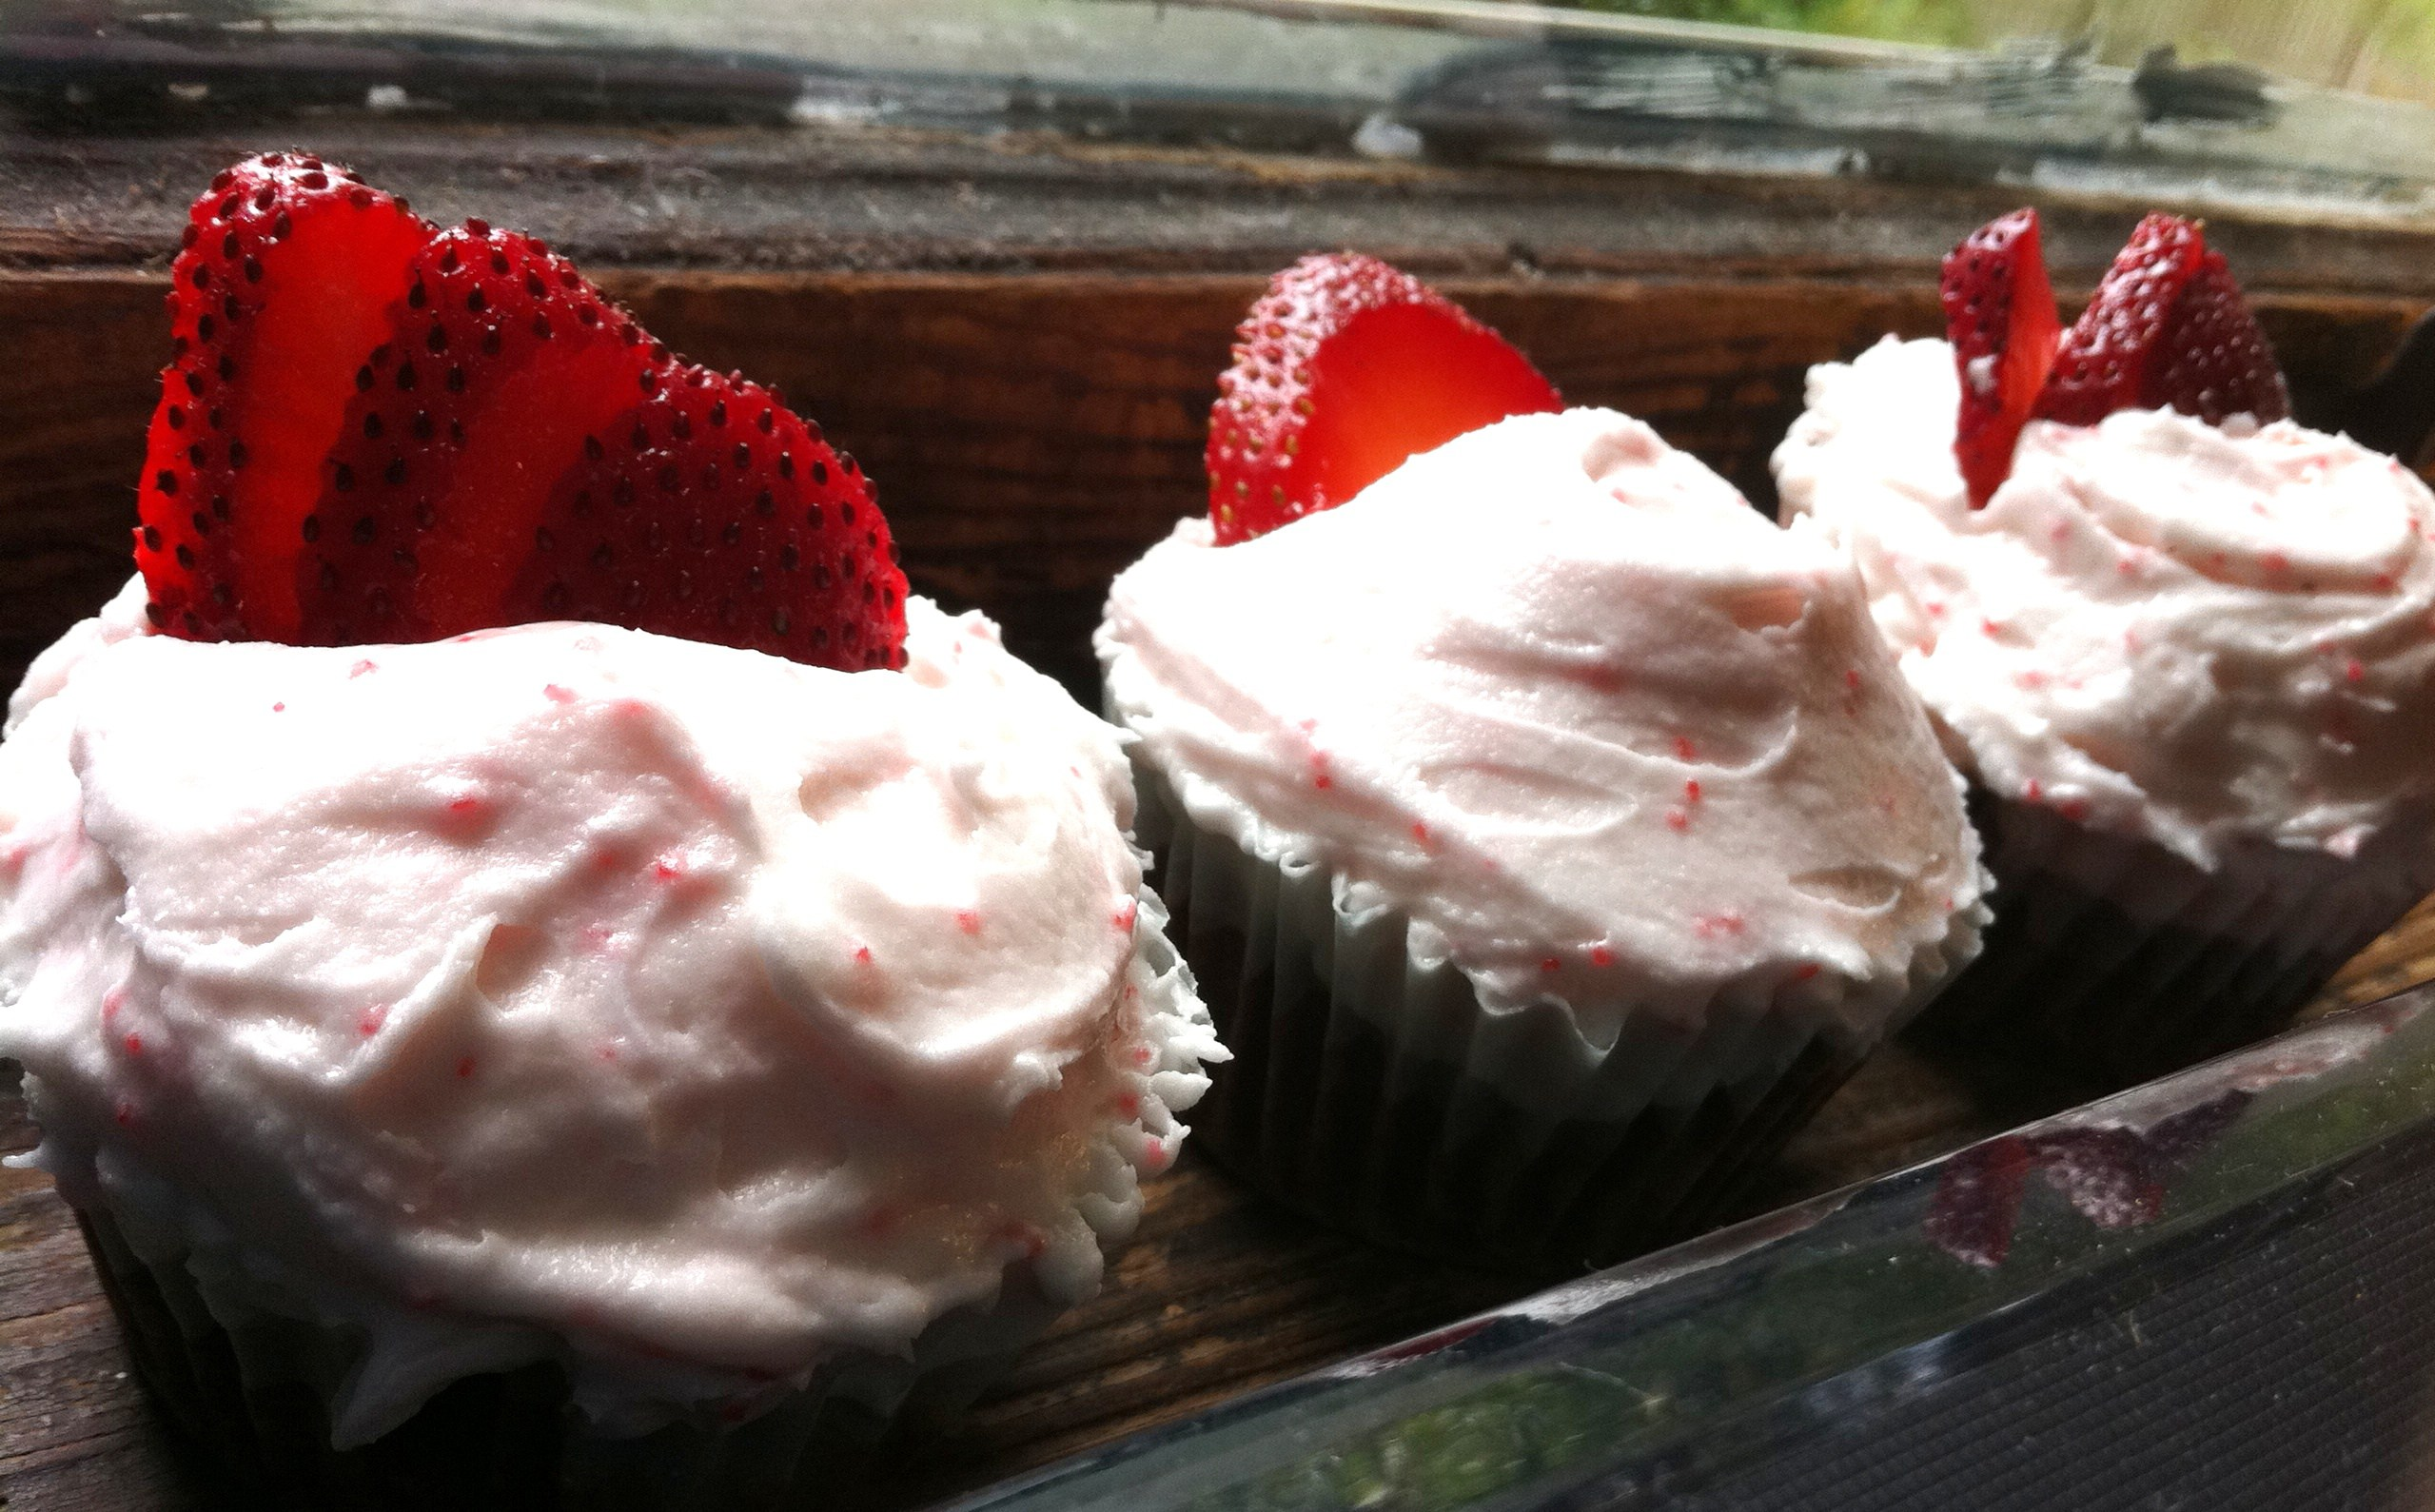 Vegan Strawberry Chocolate Cupcakes